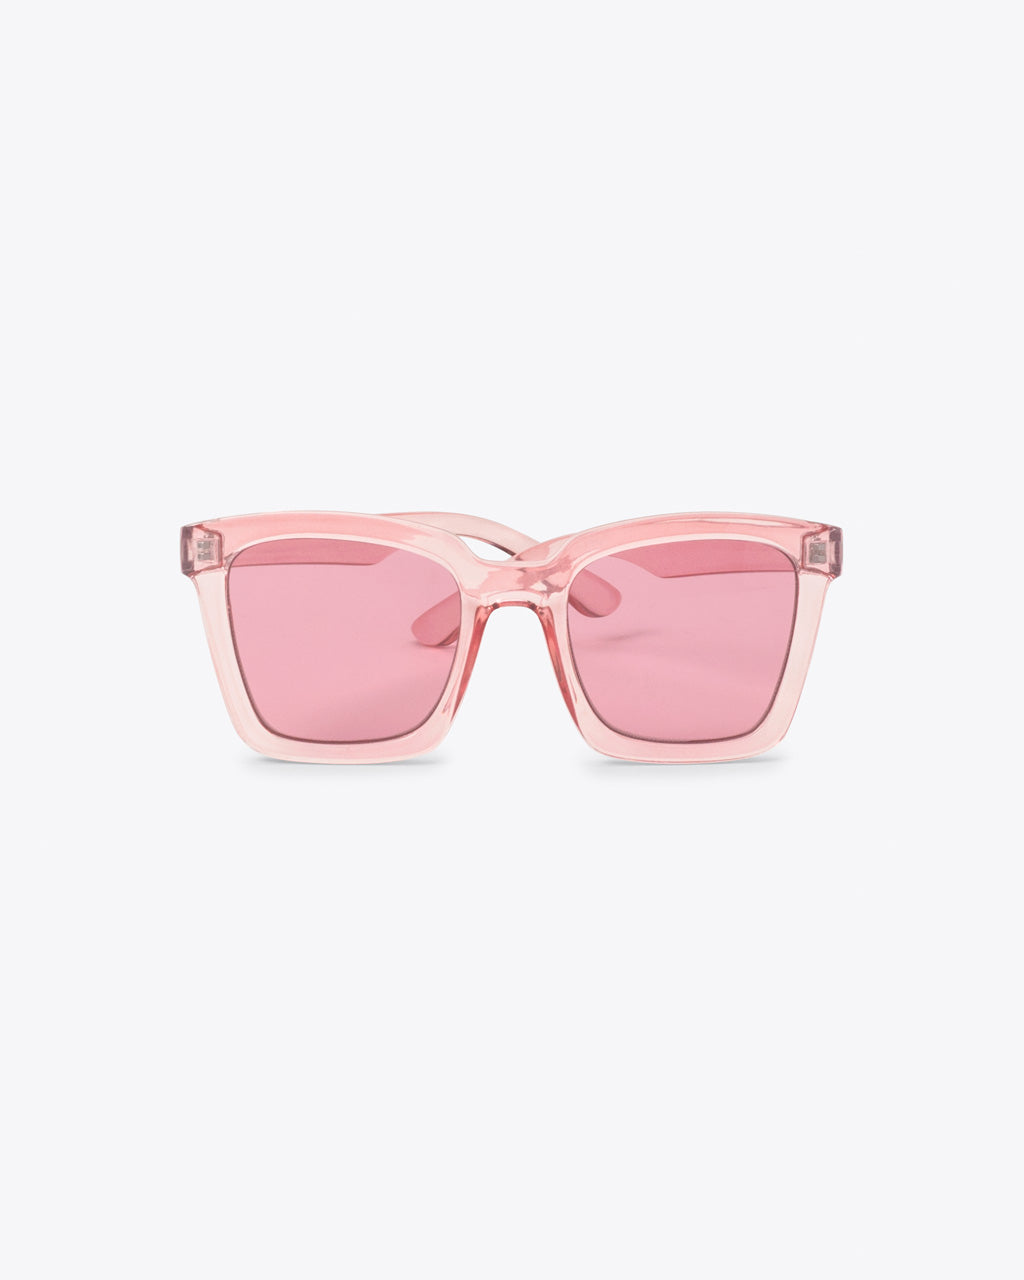 square sunglasses with pink frames and pink lenses